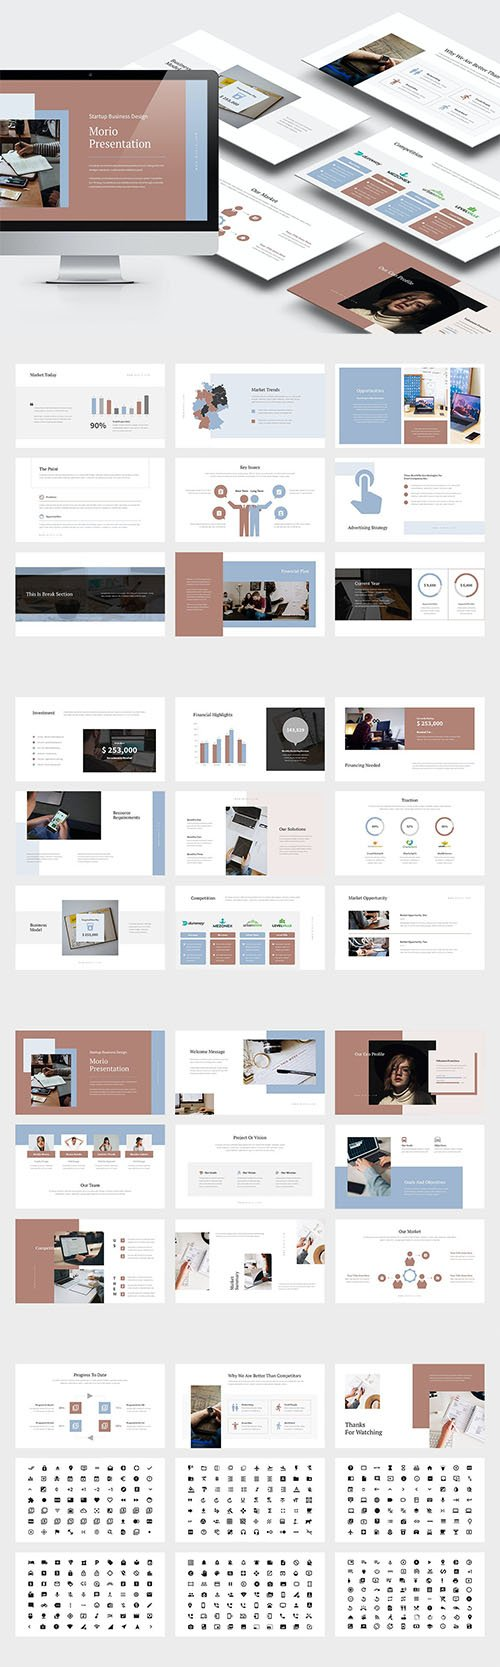 Morio : Startup Investor Relations Powerpoint and Keynote